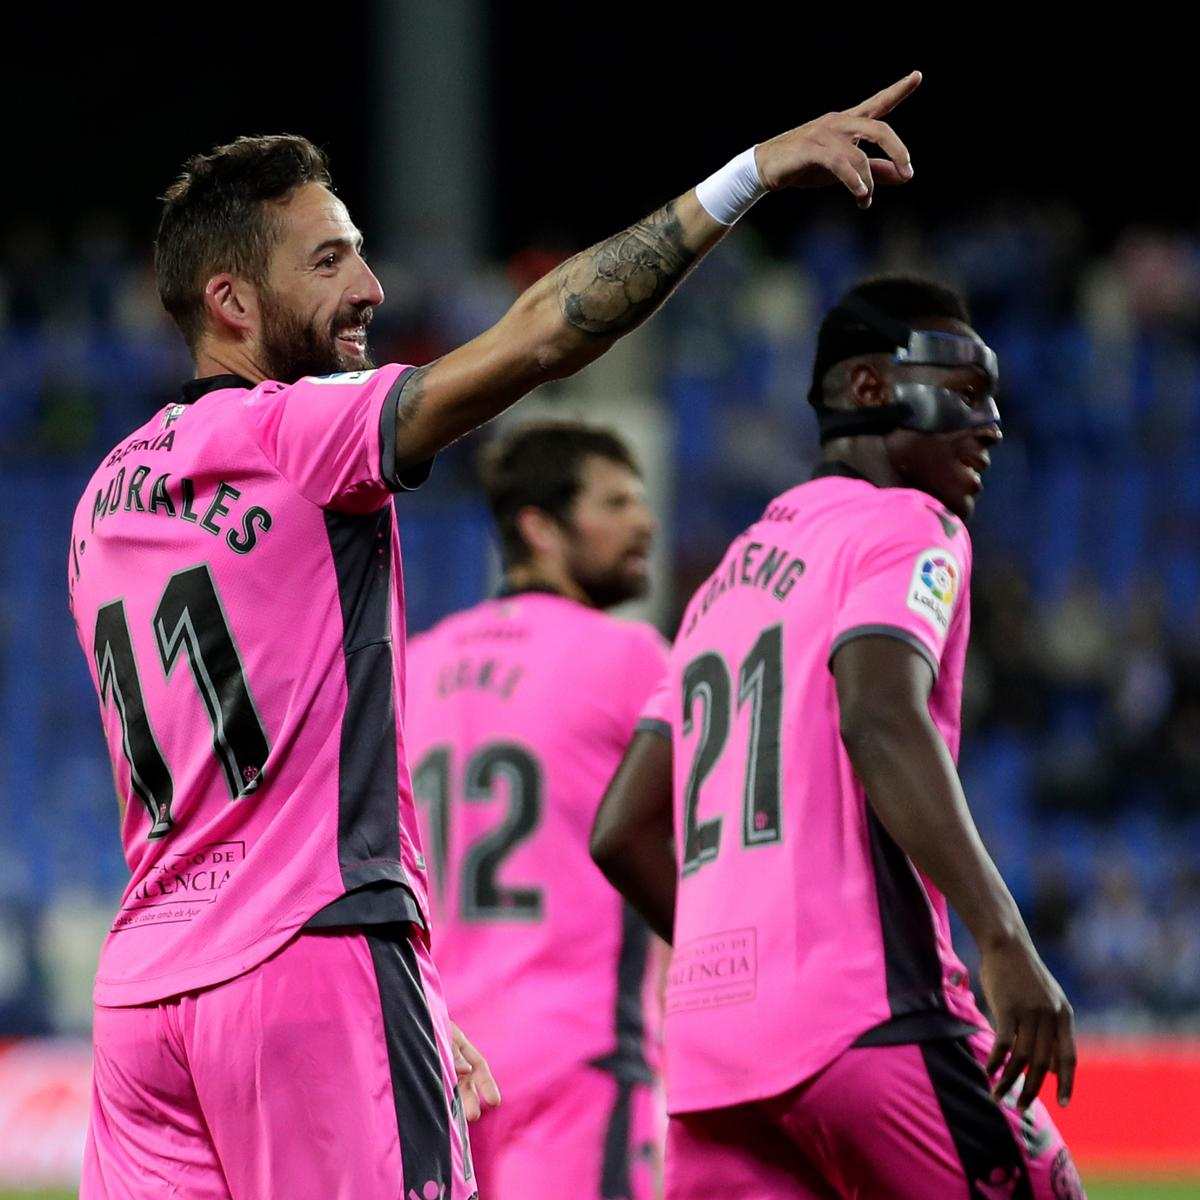 La liga results 2018 full table and scores after final week 36 match bleacher report latest - La liga latest results and table ...